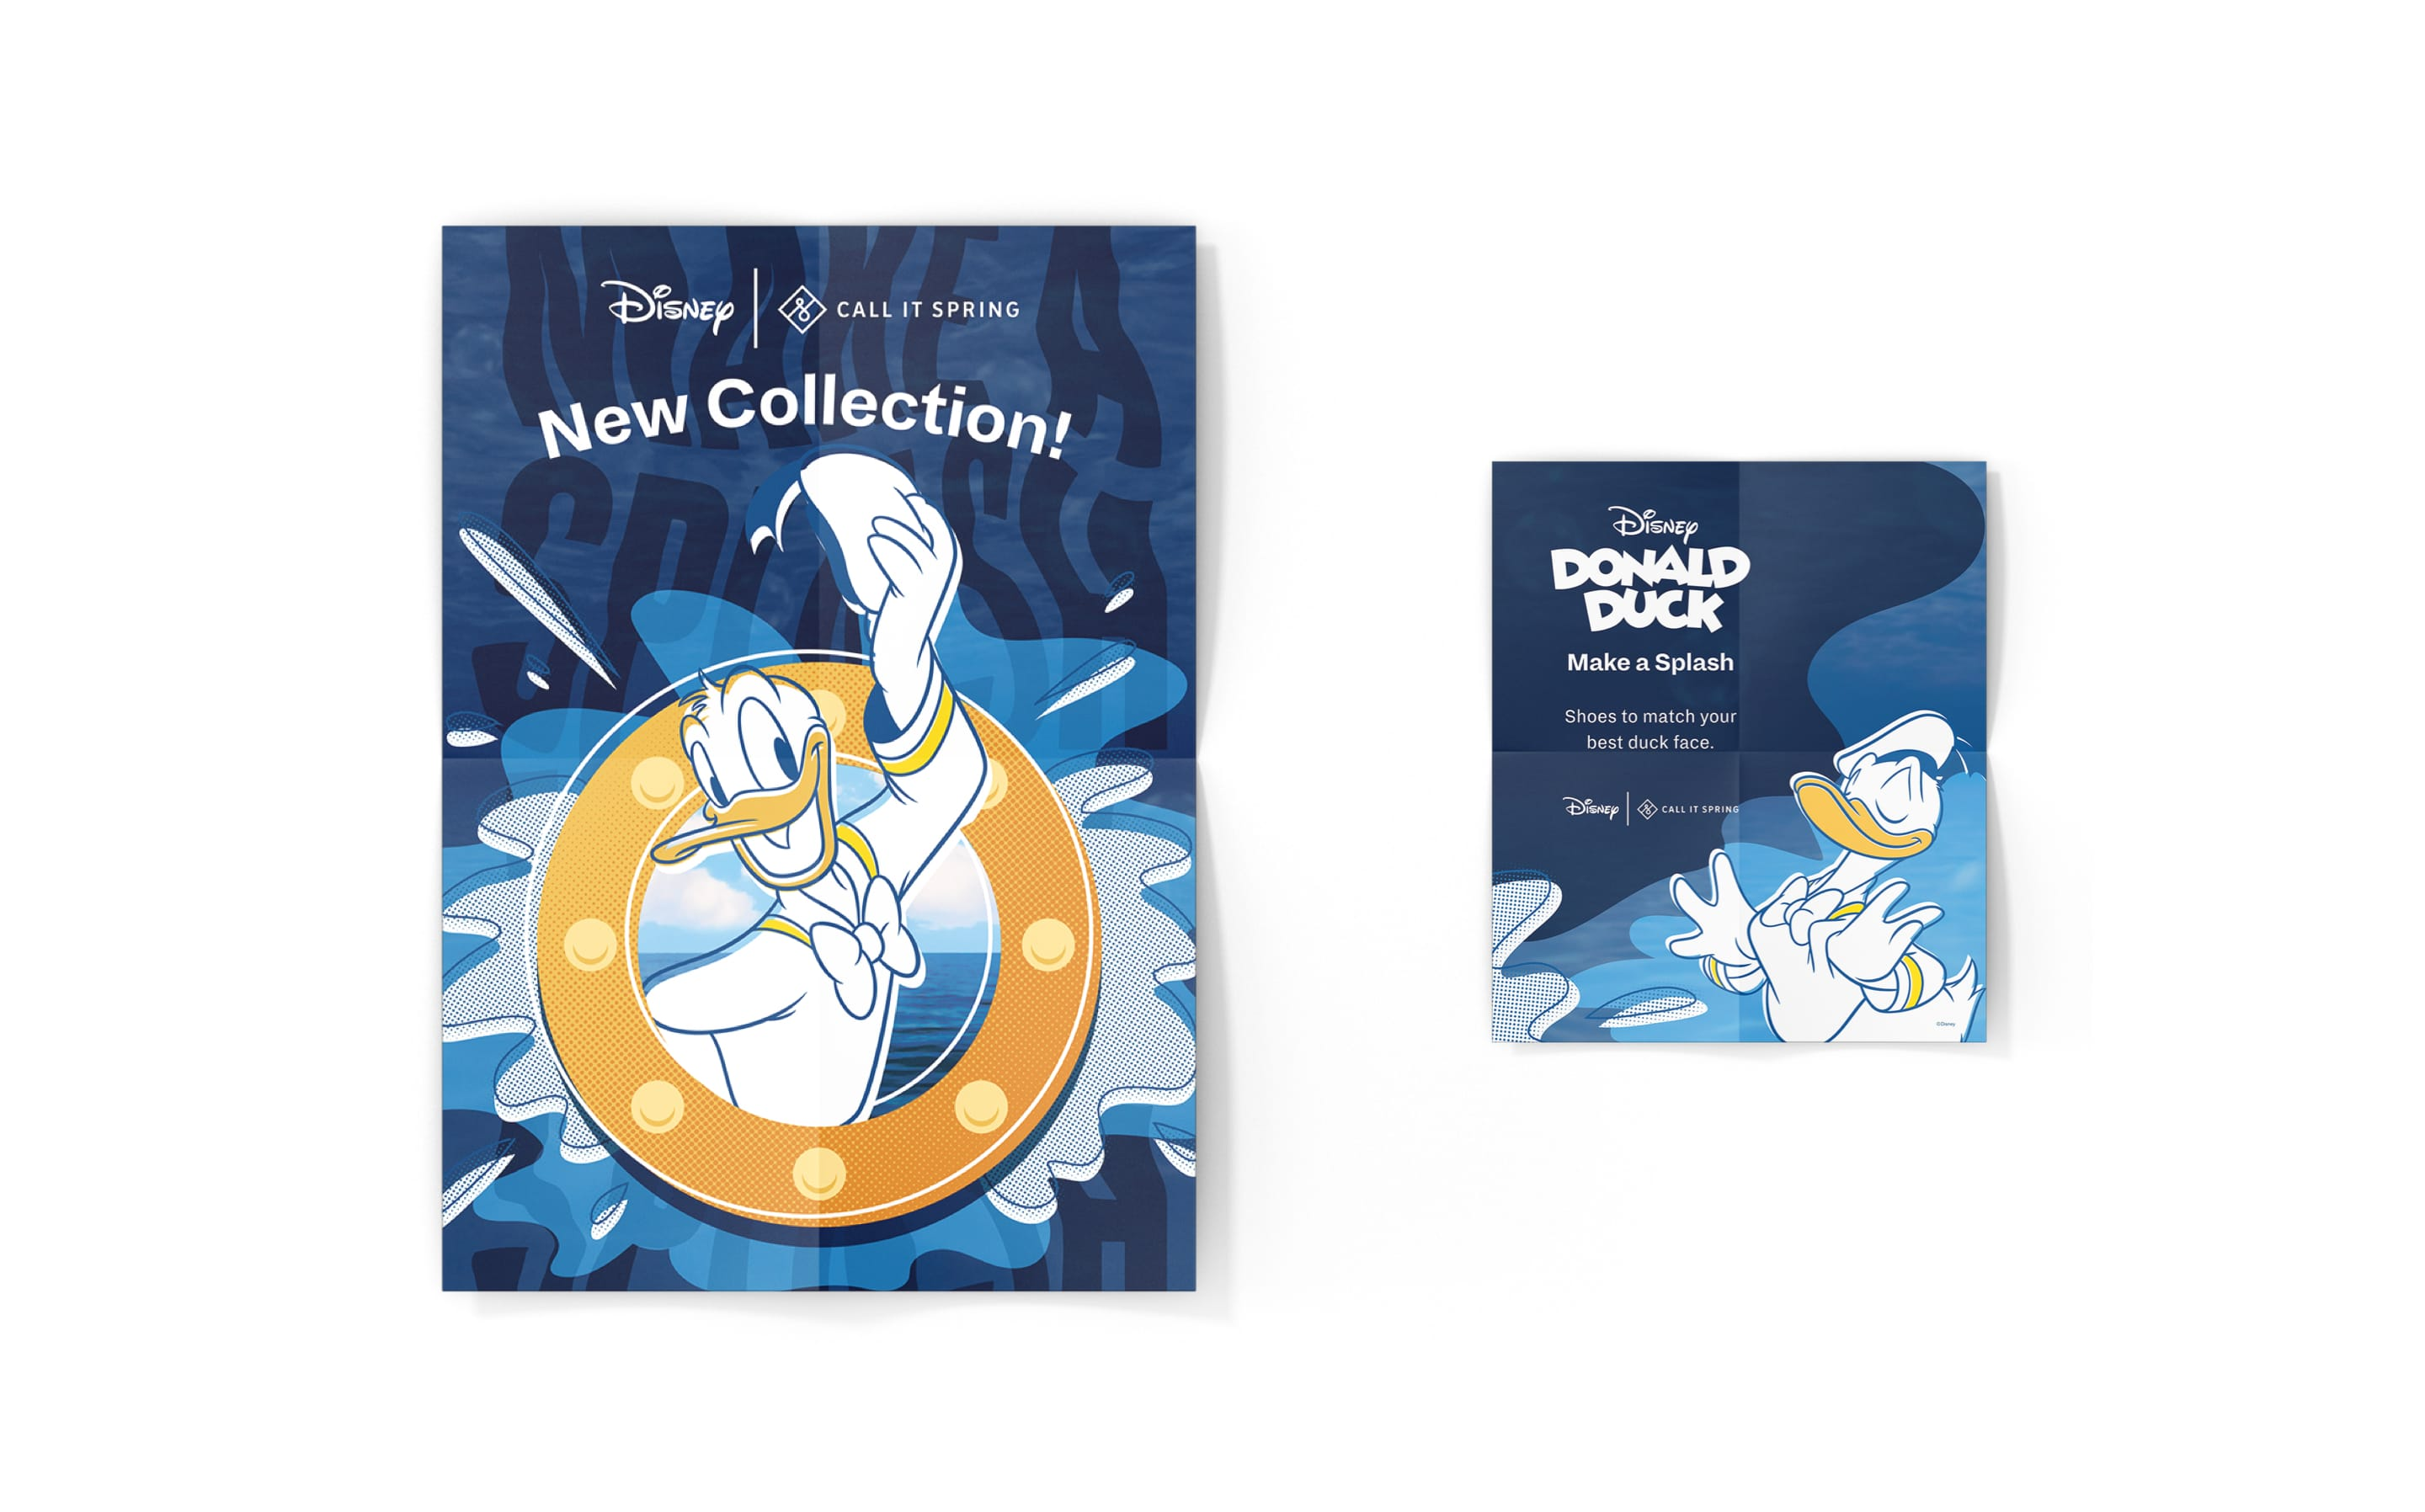 Donald Duck X Call it Spring in-store signage